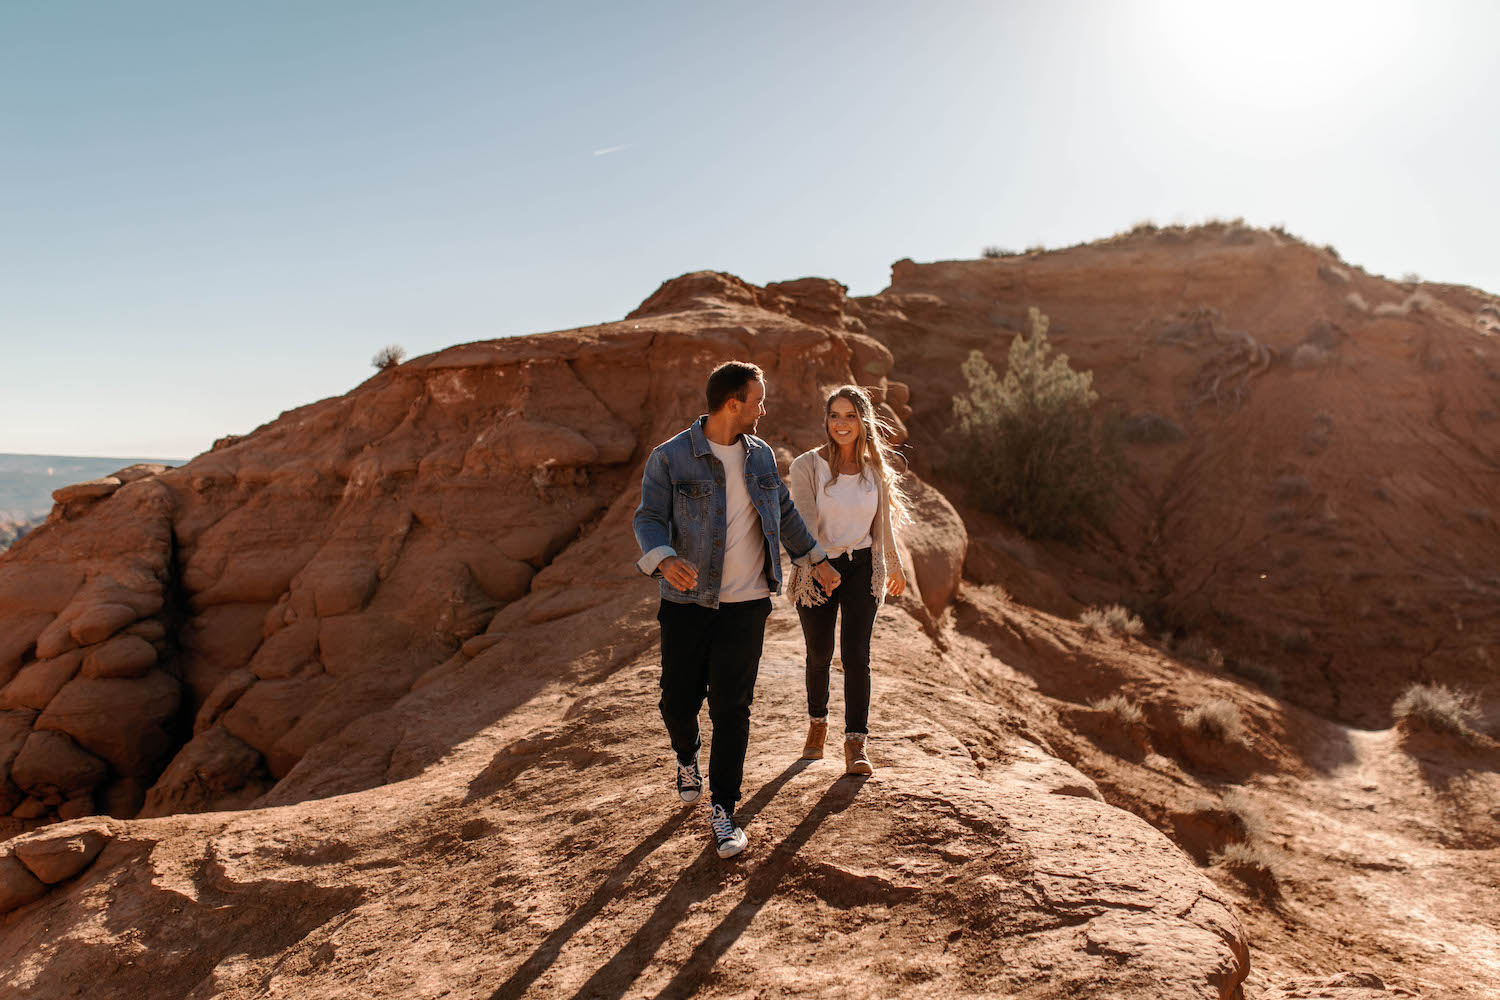 Bryce-Canyon-National-Park-Adventure-Couple-Session-27.jpg